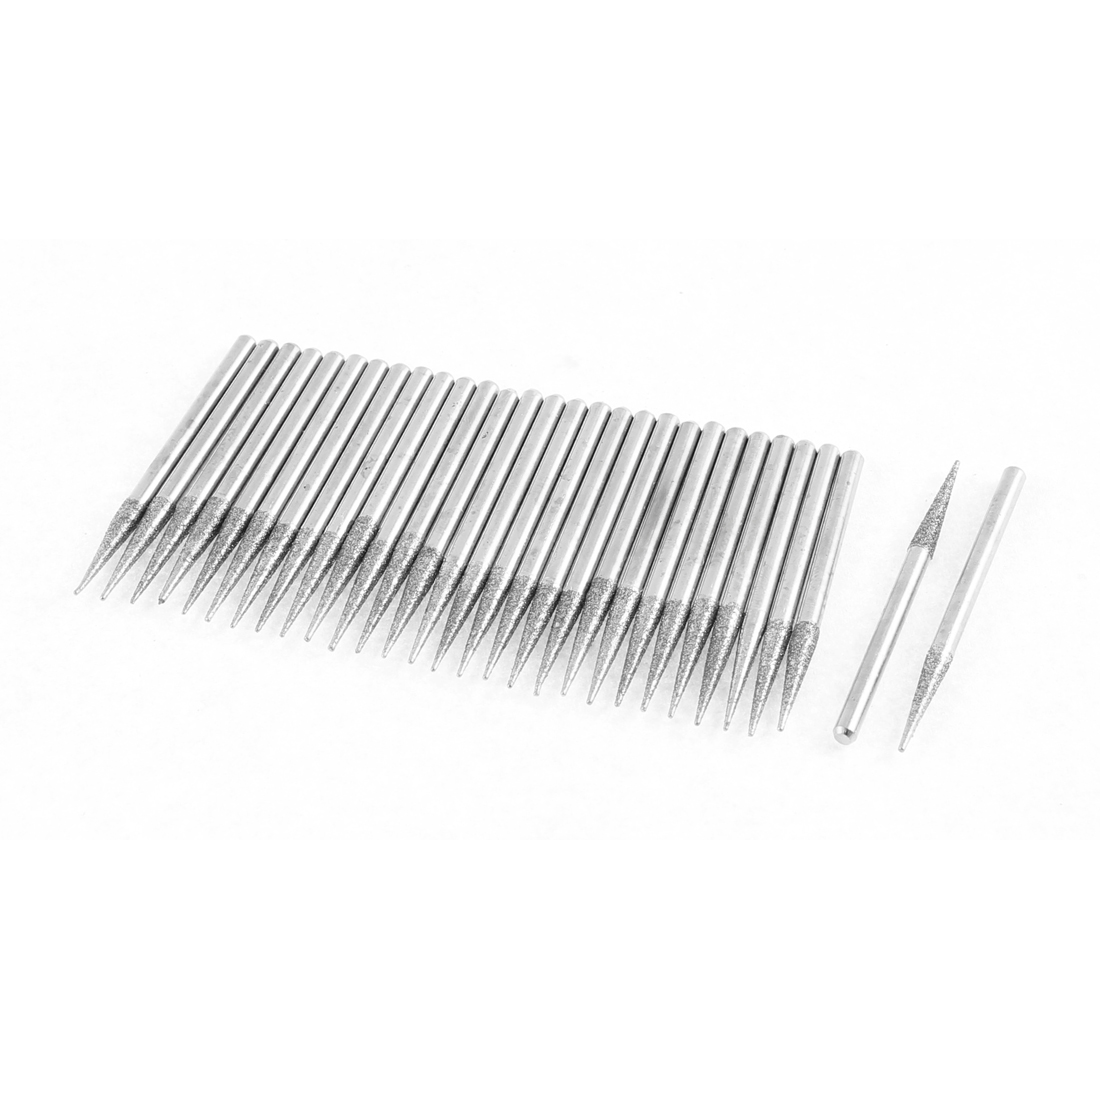 Diamond Grinding Mounted Point 3mm x 17mm Taper Needle Head 30Pcs